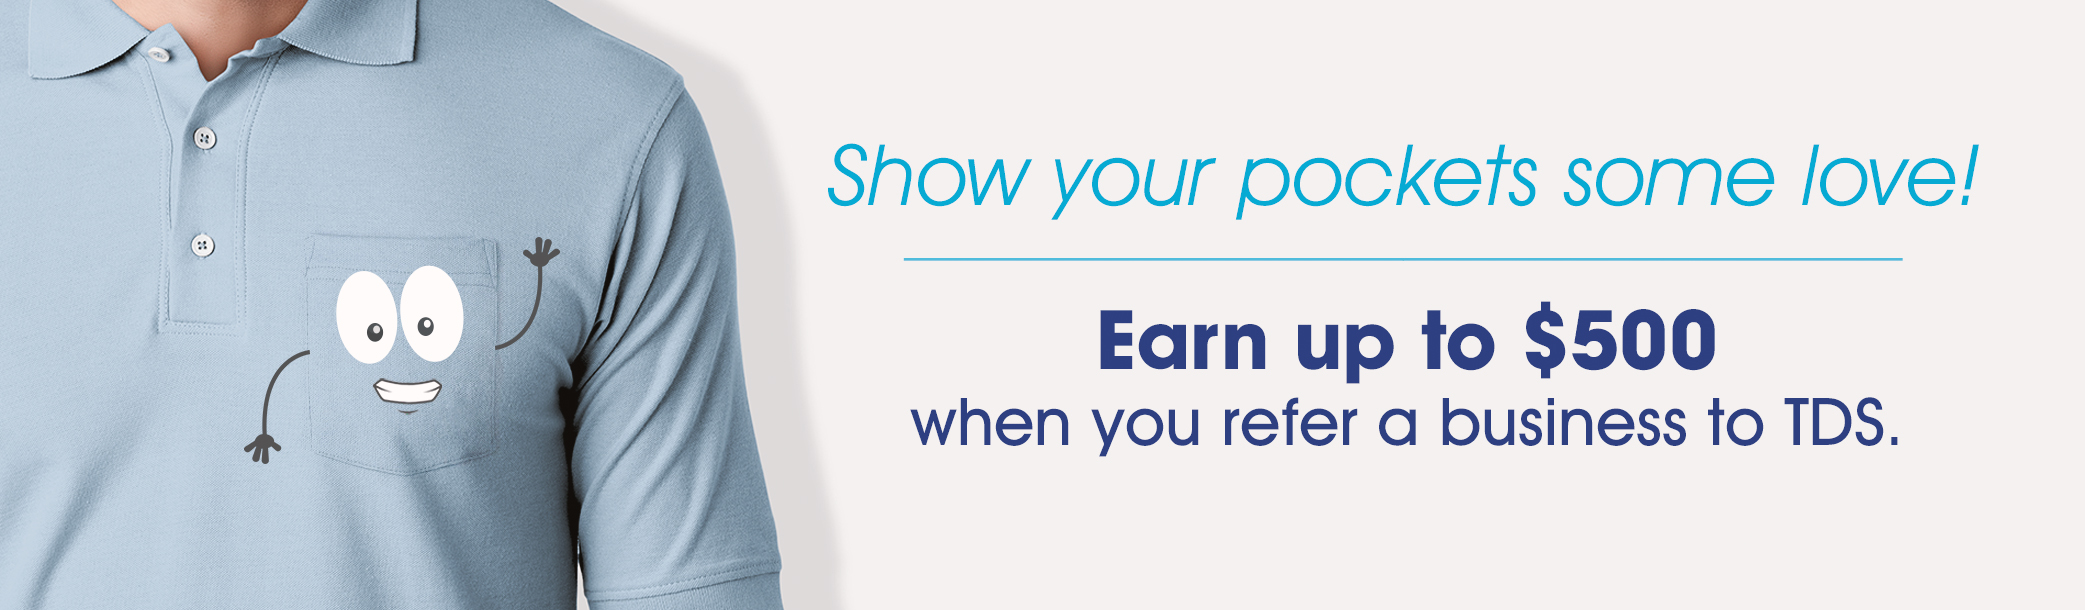 Earn up to $500 when you refer a business to TDS